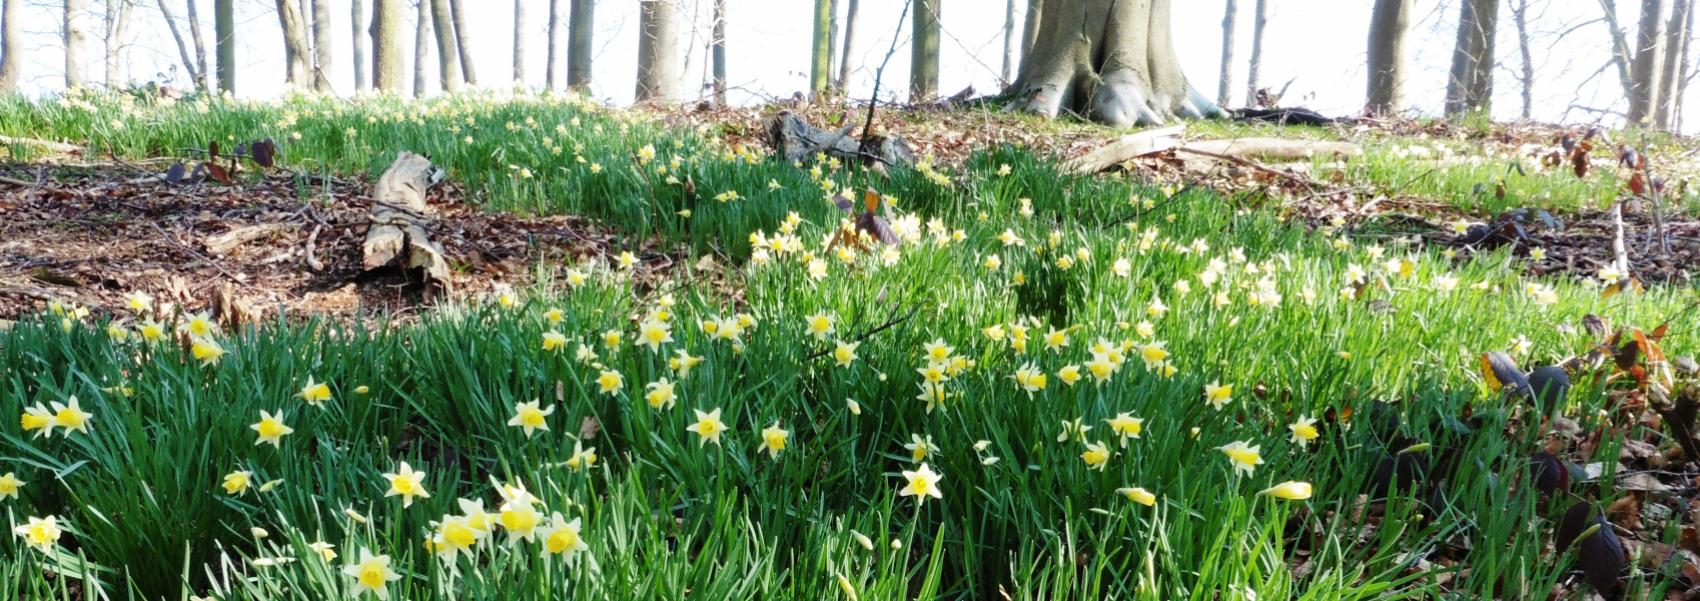 wilde narcissen in Steenhoutbos